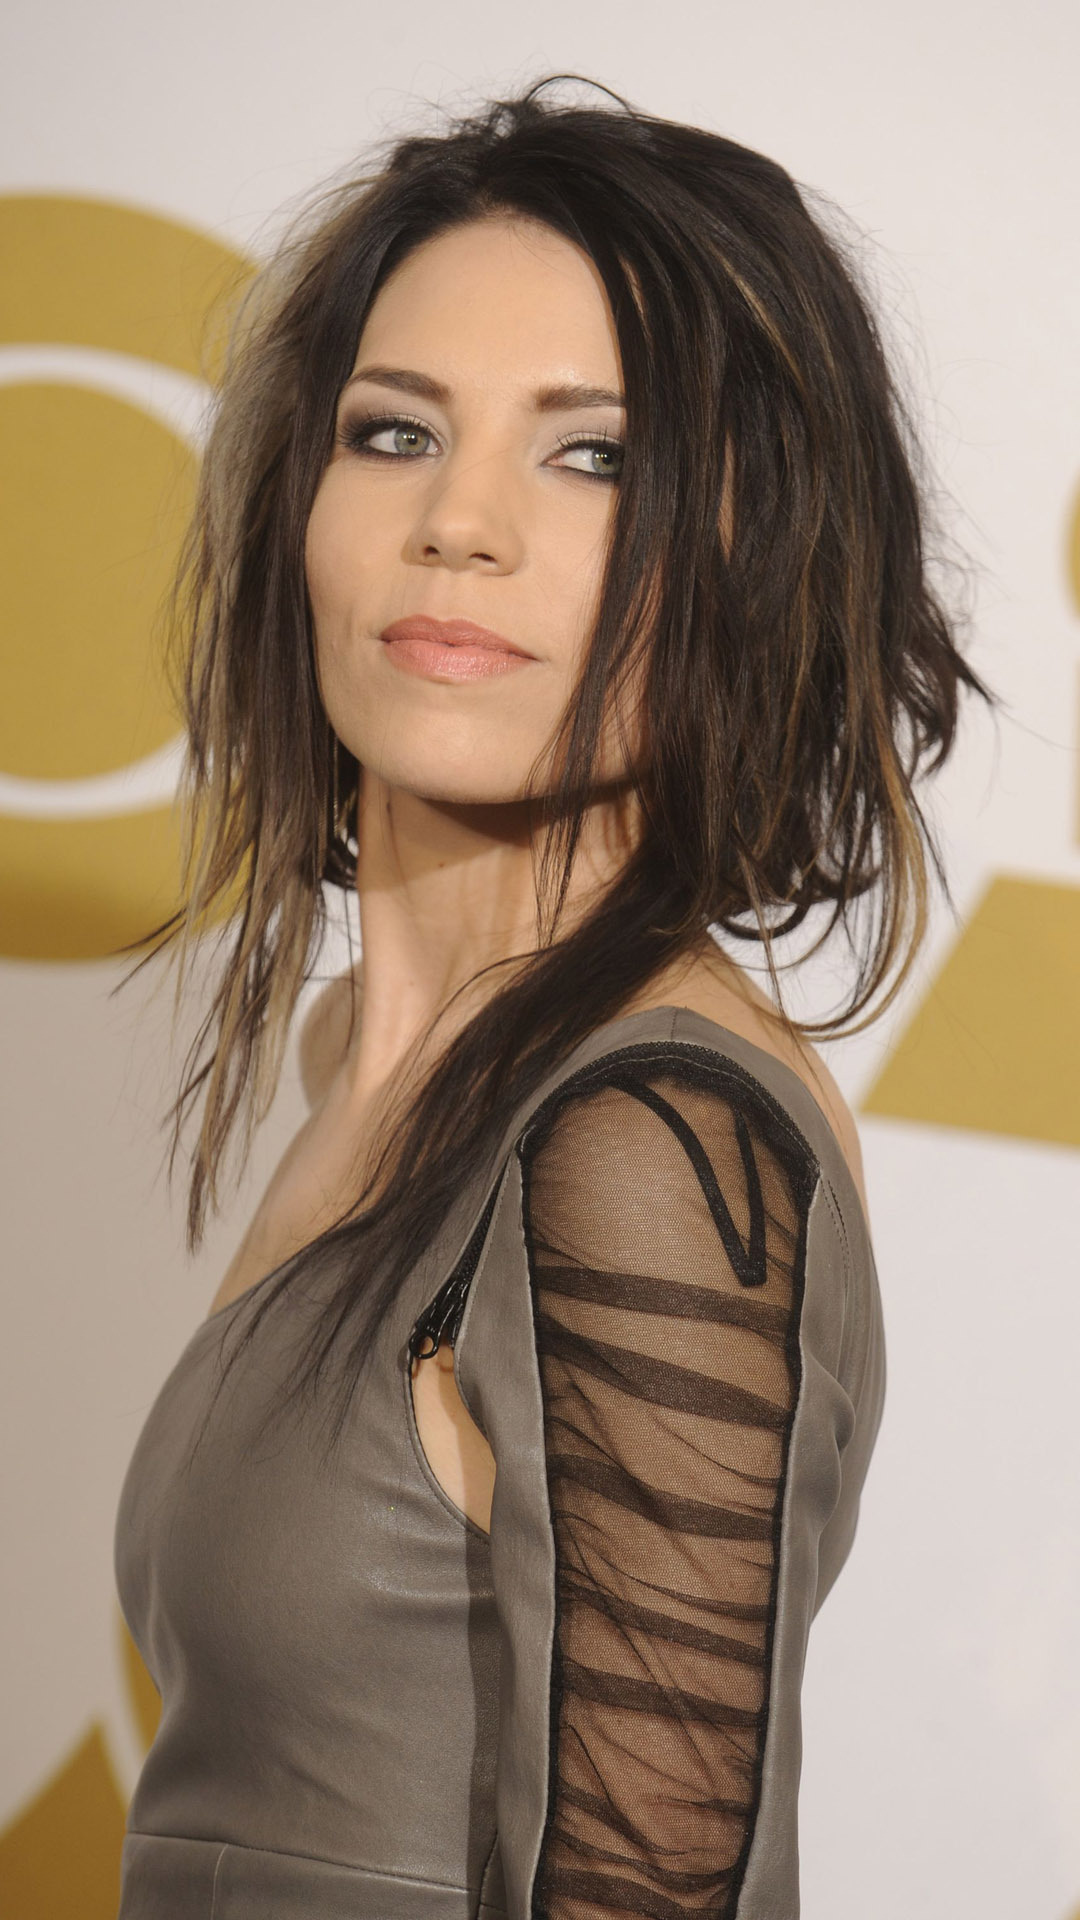 skylar grey coming home скачать